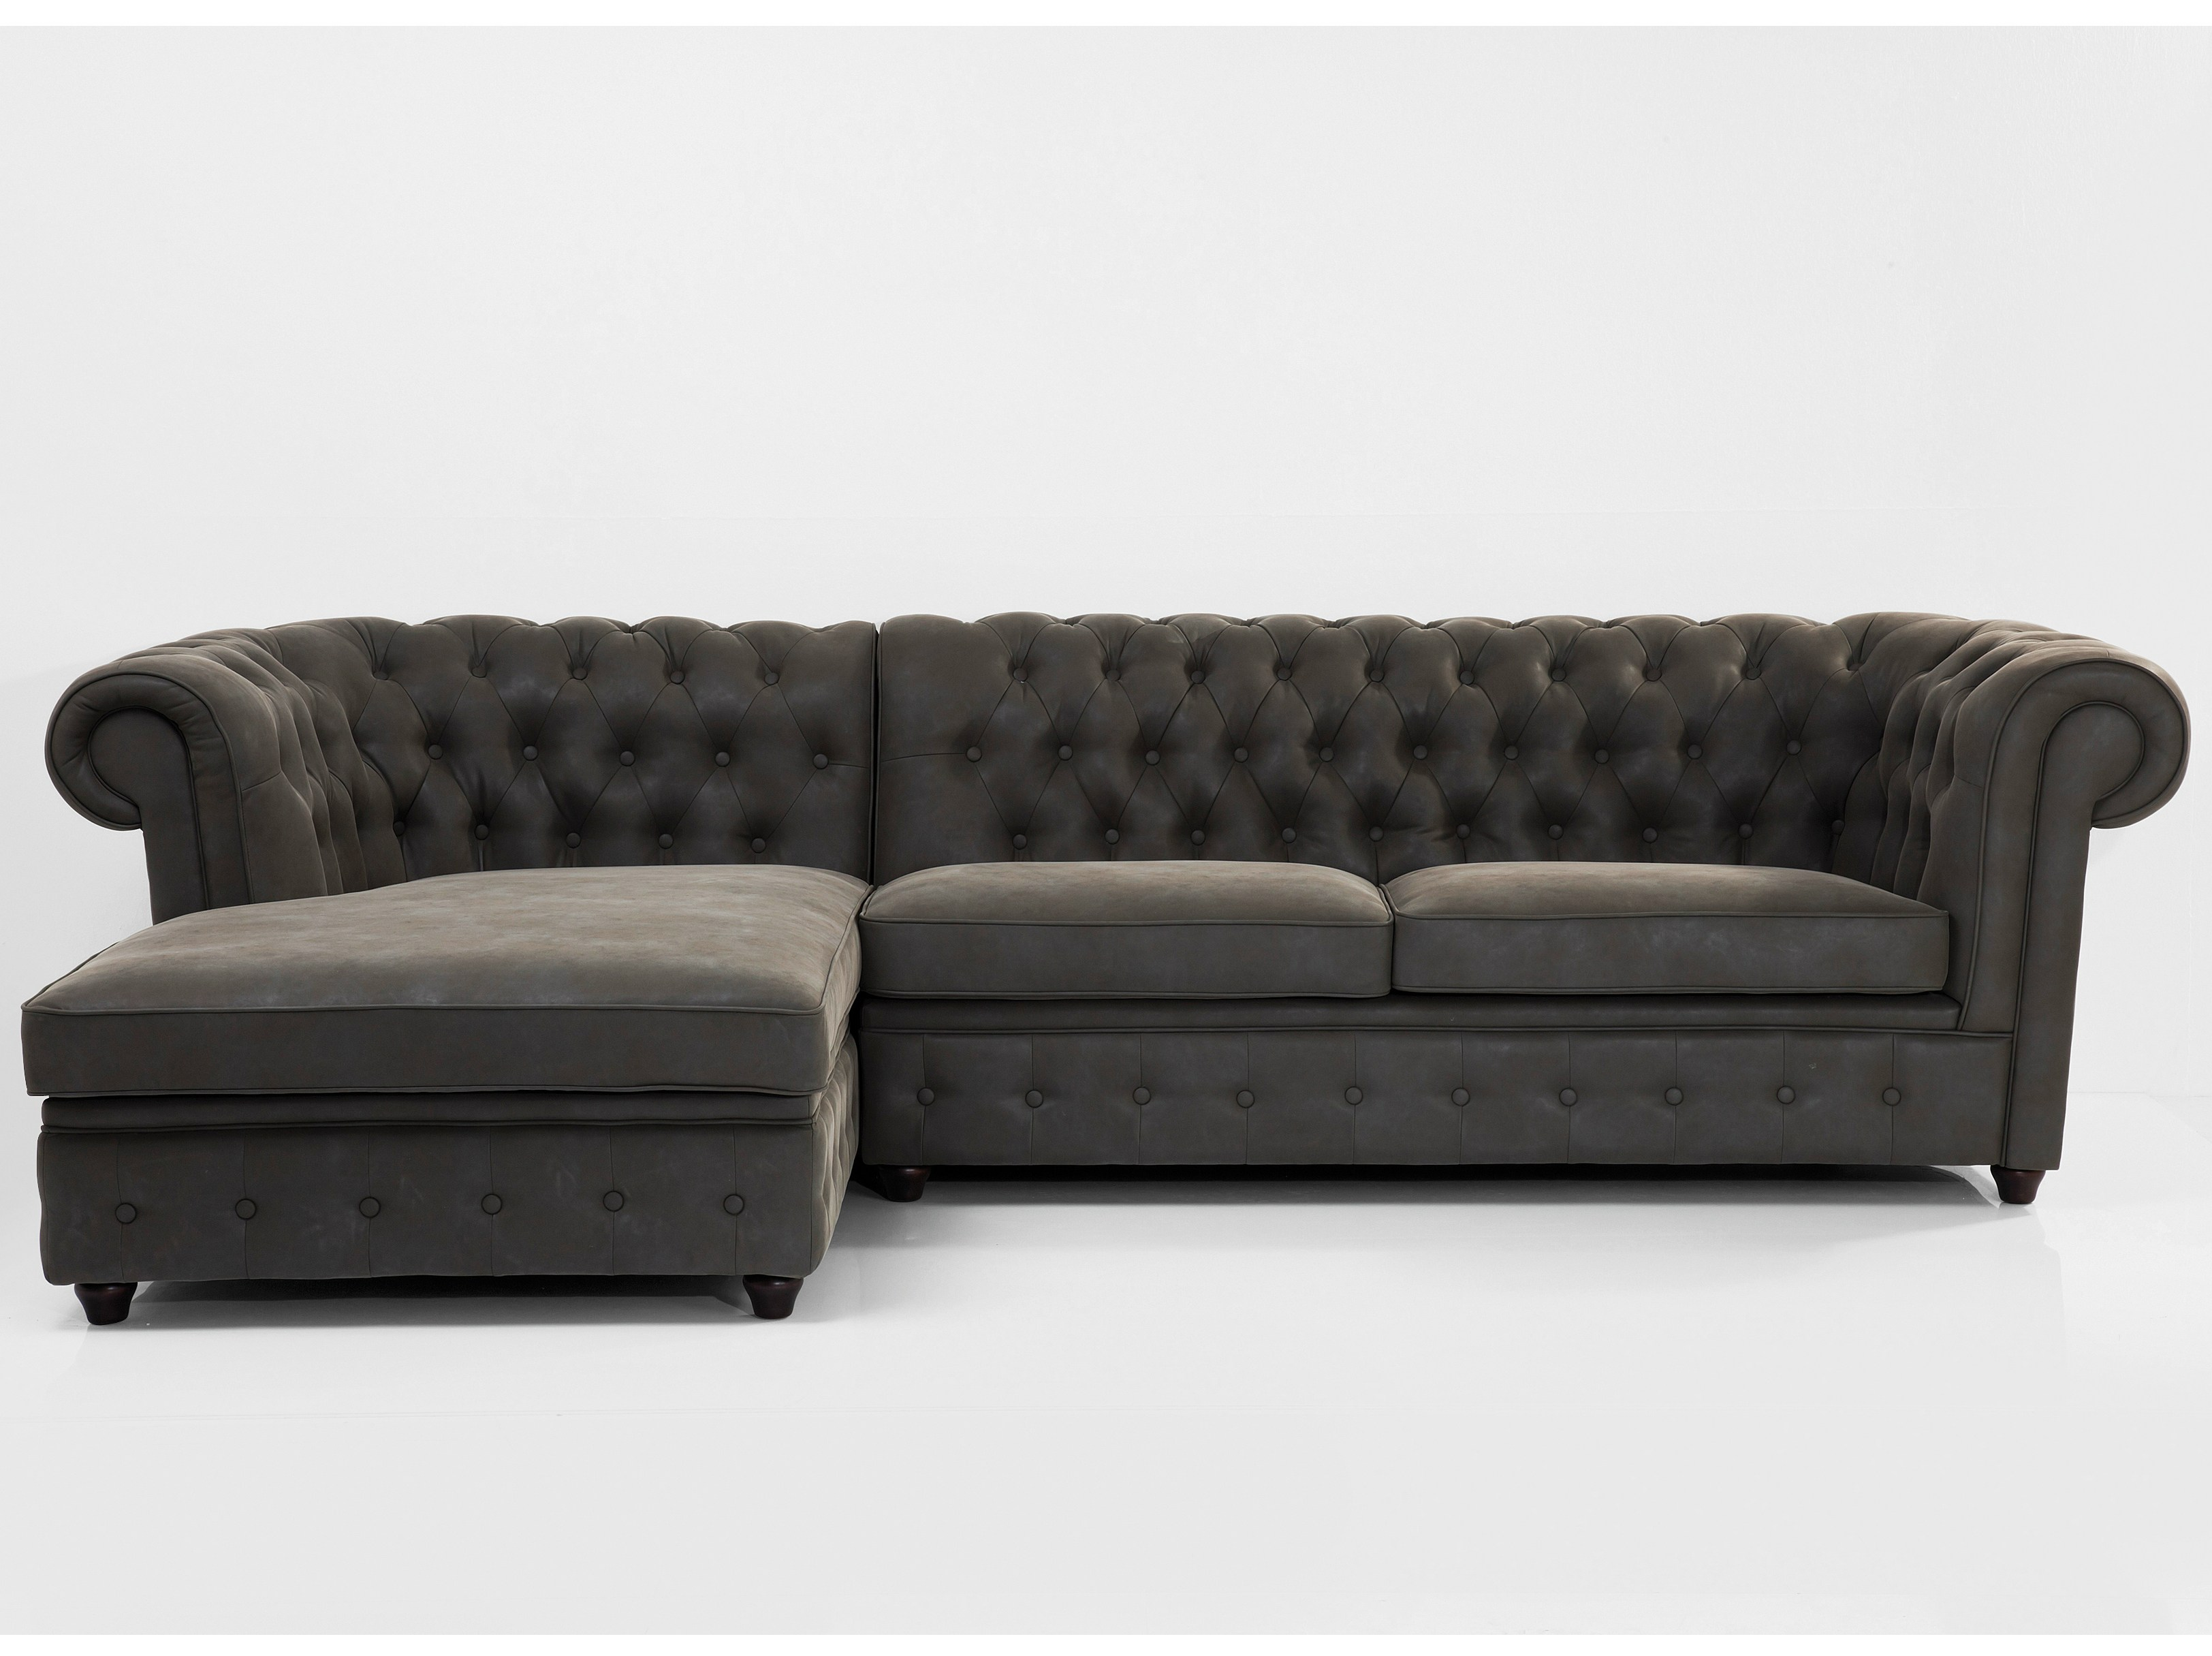 Oxford sofa oxford pop up platform sleeper sofa modern for Canape oxford honey leather sofa